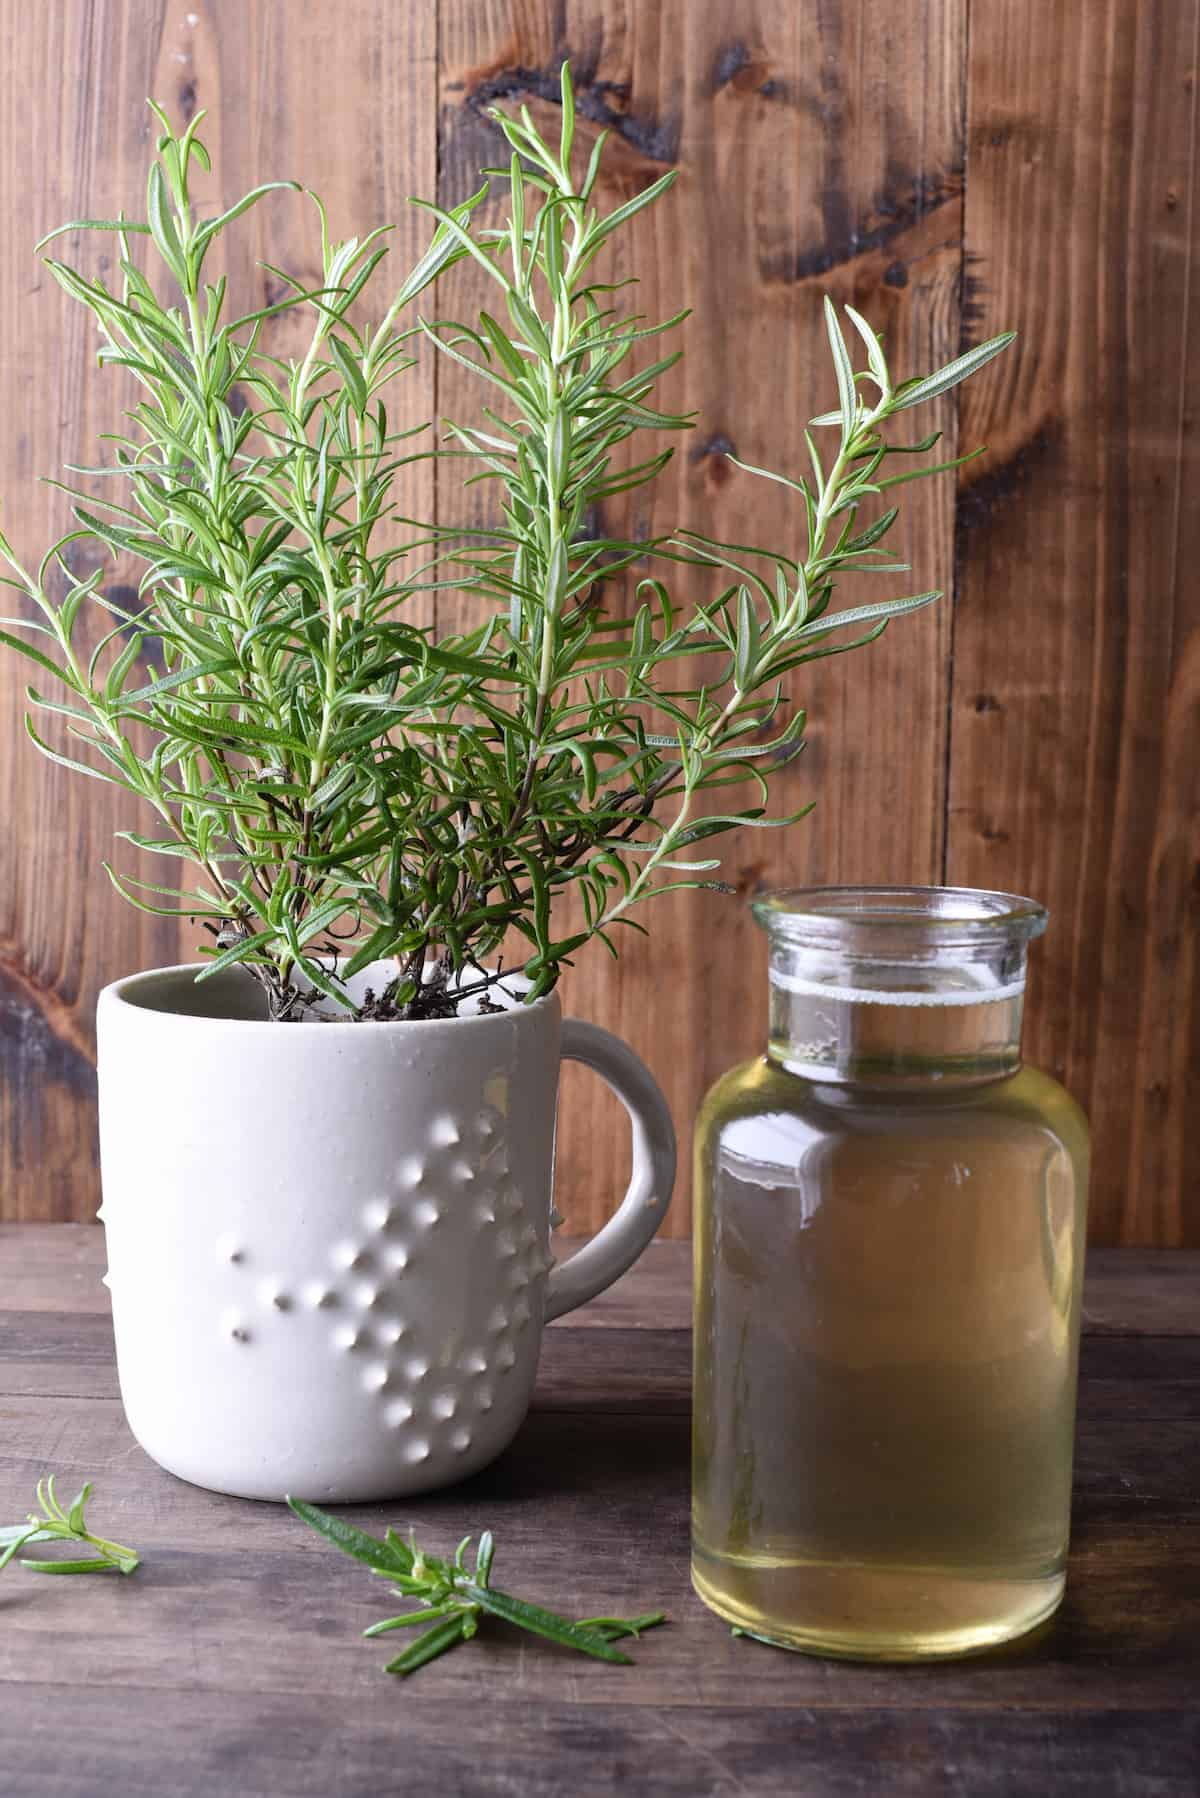 Small bottle of rosemary simple syrup and rosemary plant against wooden backdrop.